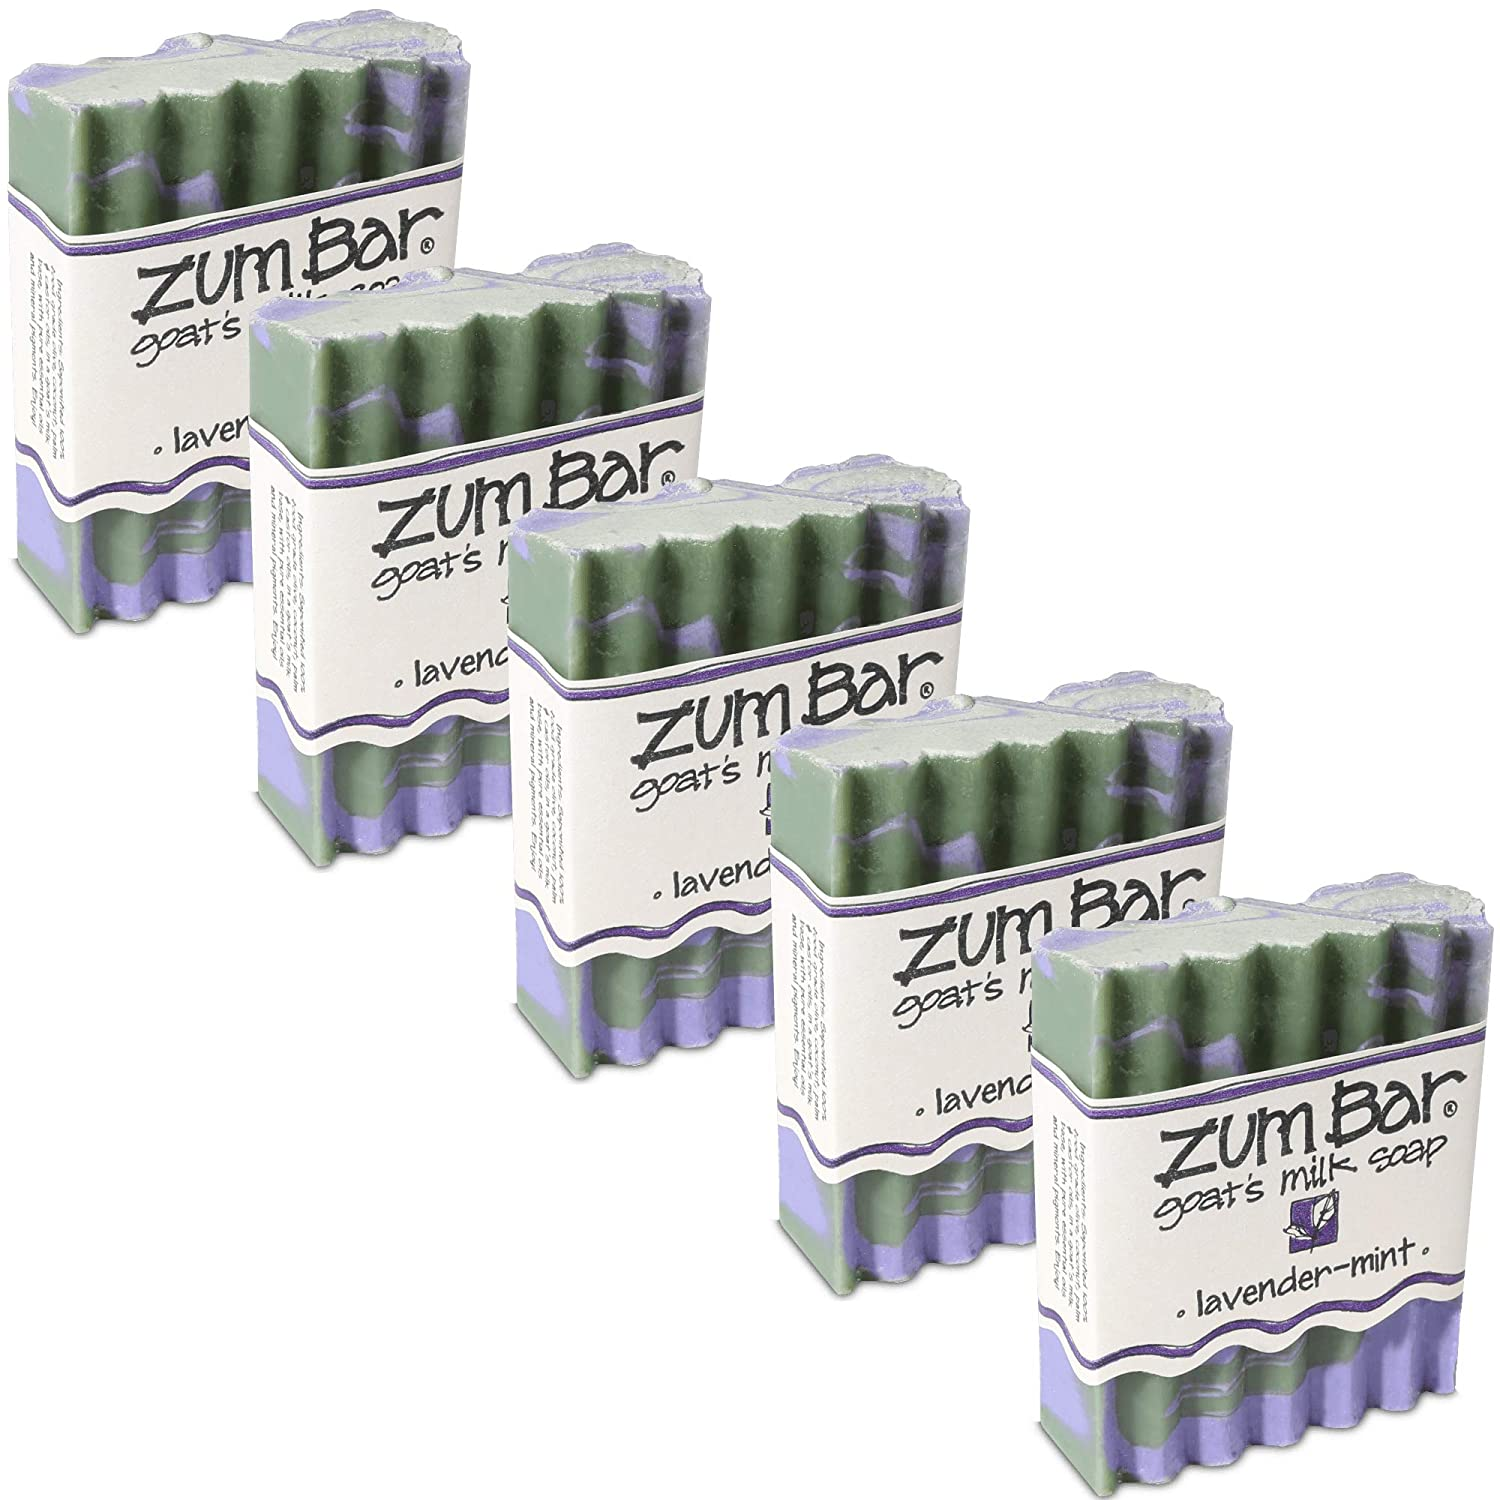 Indigo Wild: Zum Bar Goat's Milk Soap, Lavender & Mint 3 oz (5 pack)